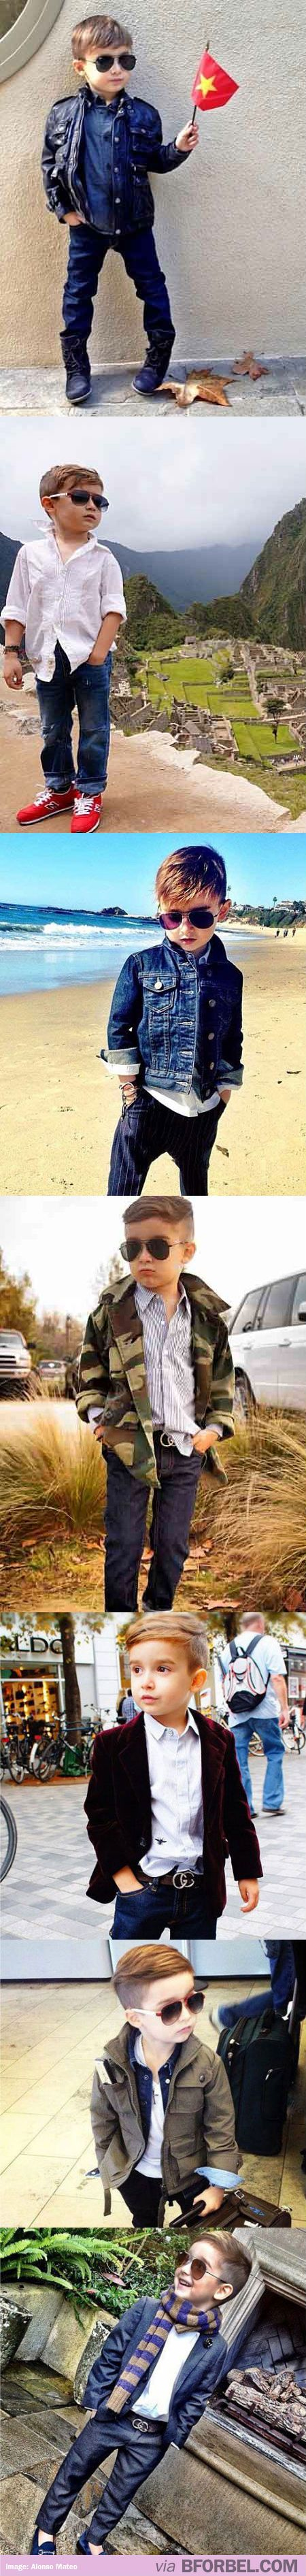 The most stylish little boy to ever walk this earth. Kid's got european swag.